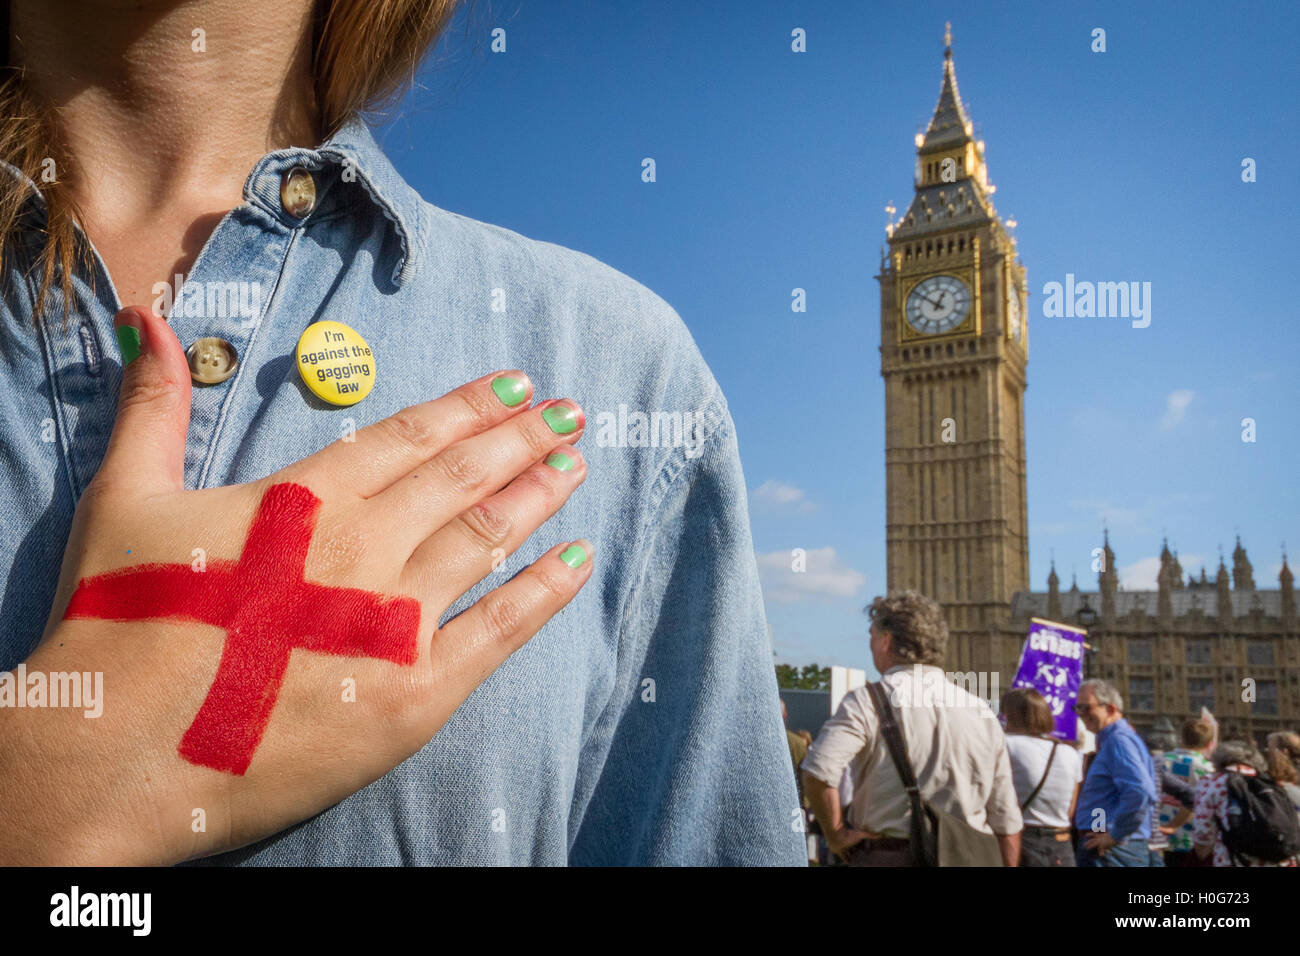 Anti-Gagging Law protest opposite Parliament buildings in London, UK. - Stock Image